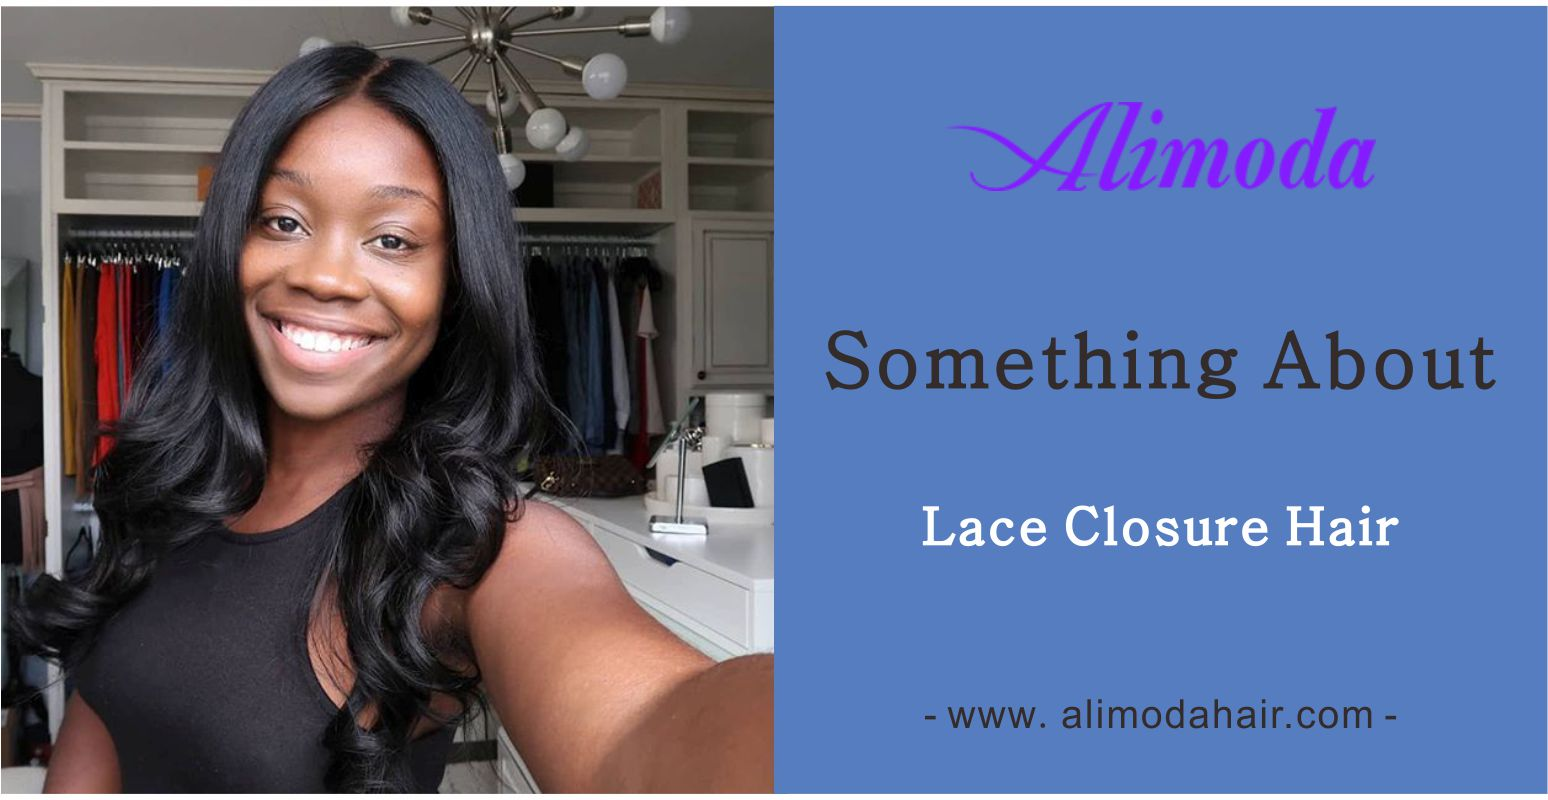 Something about lace closure hair